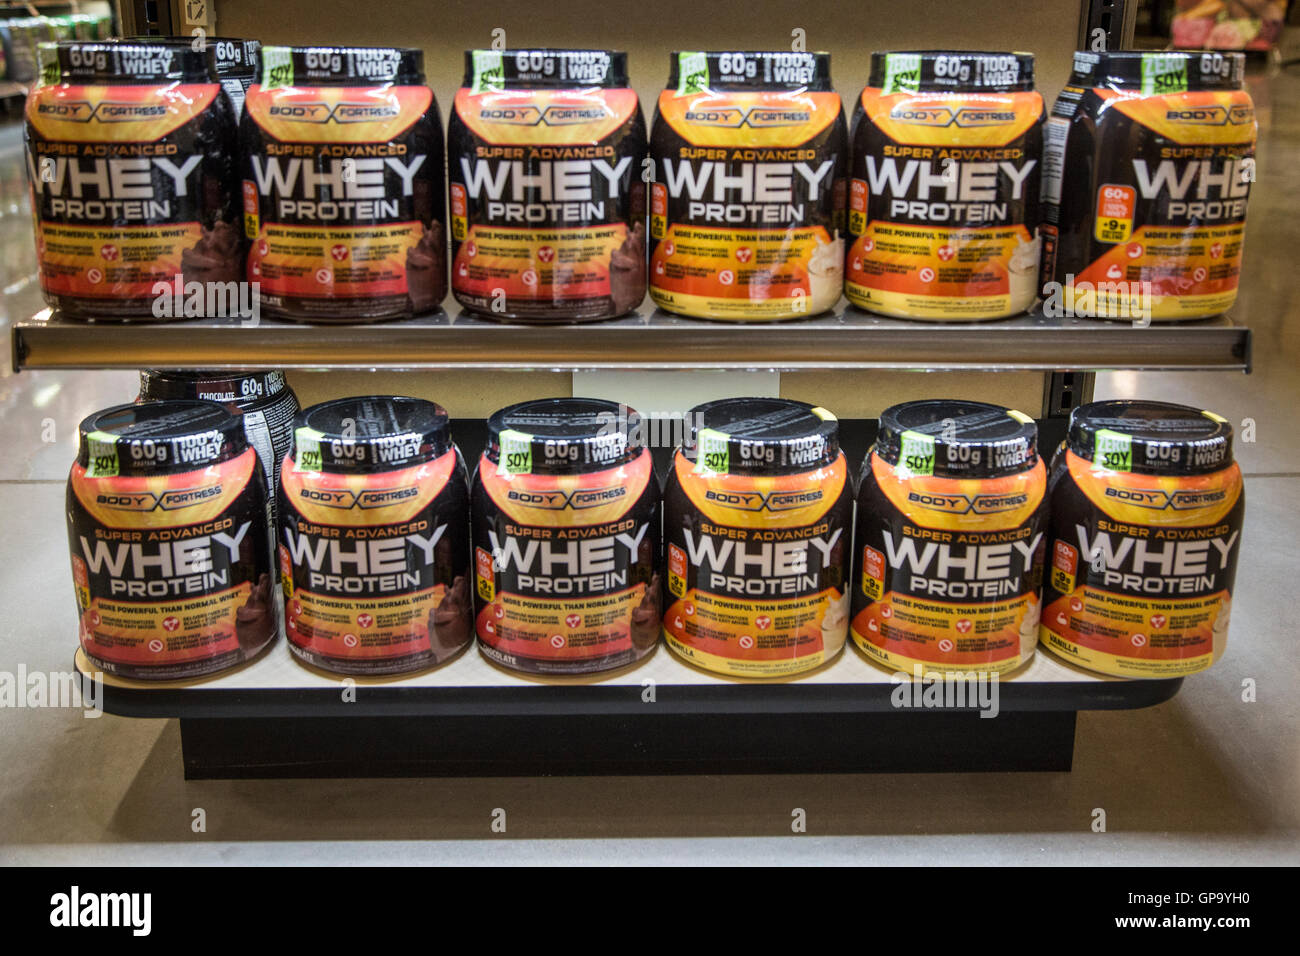 Large plastic containers of whey protein for sale on the shelves of a health food store. - Stock Image